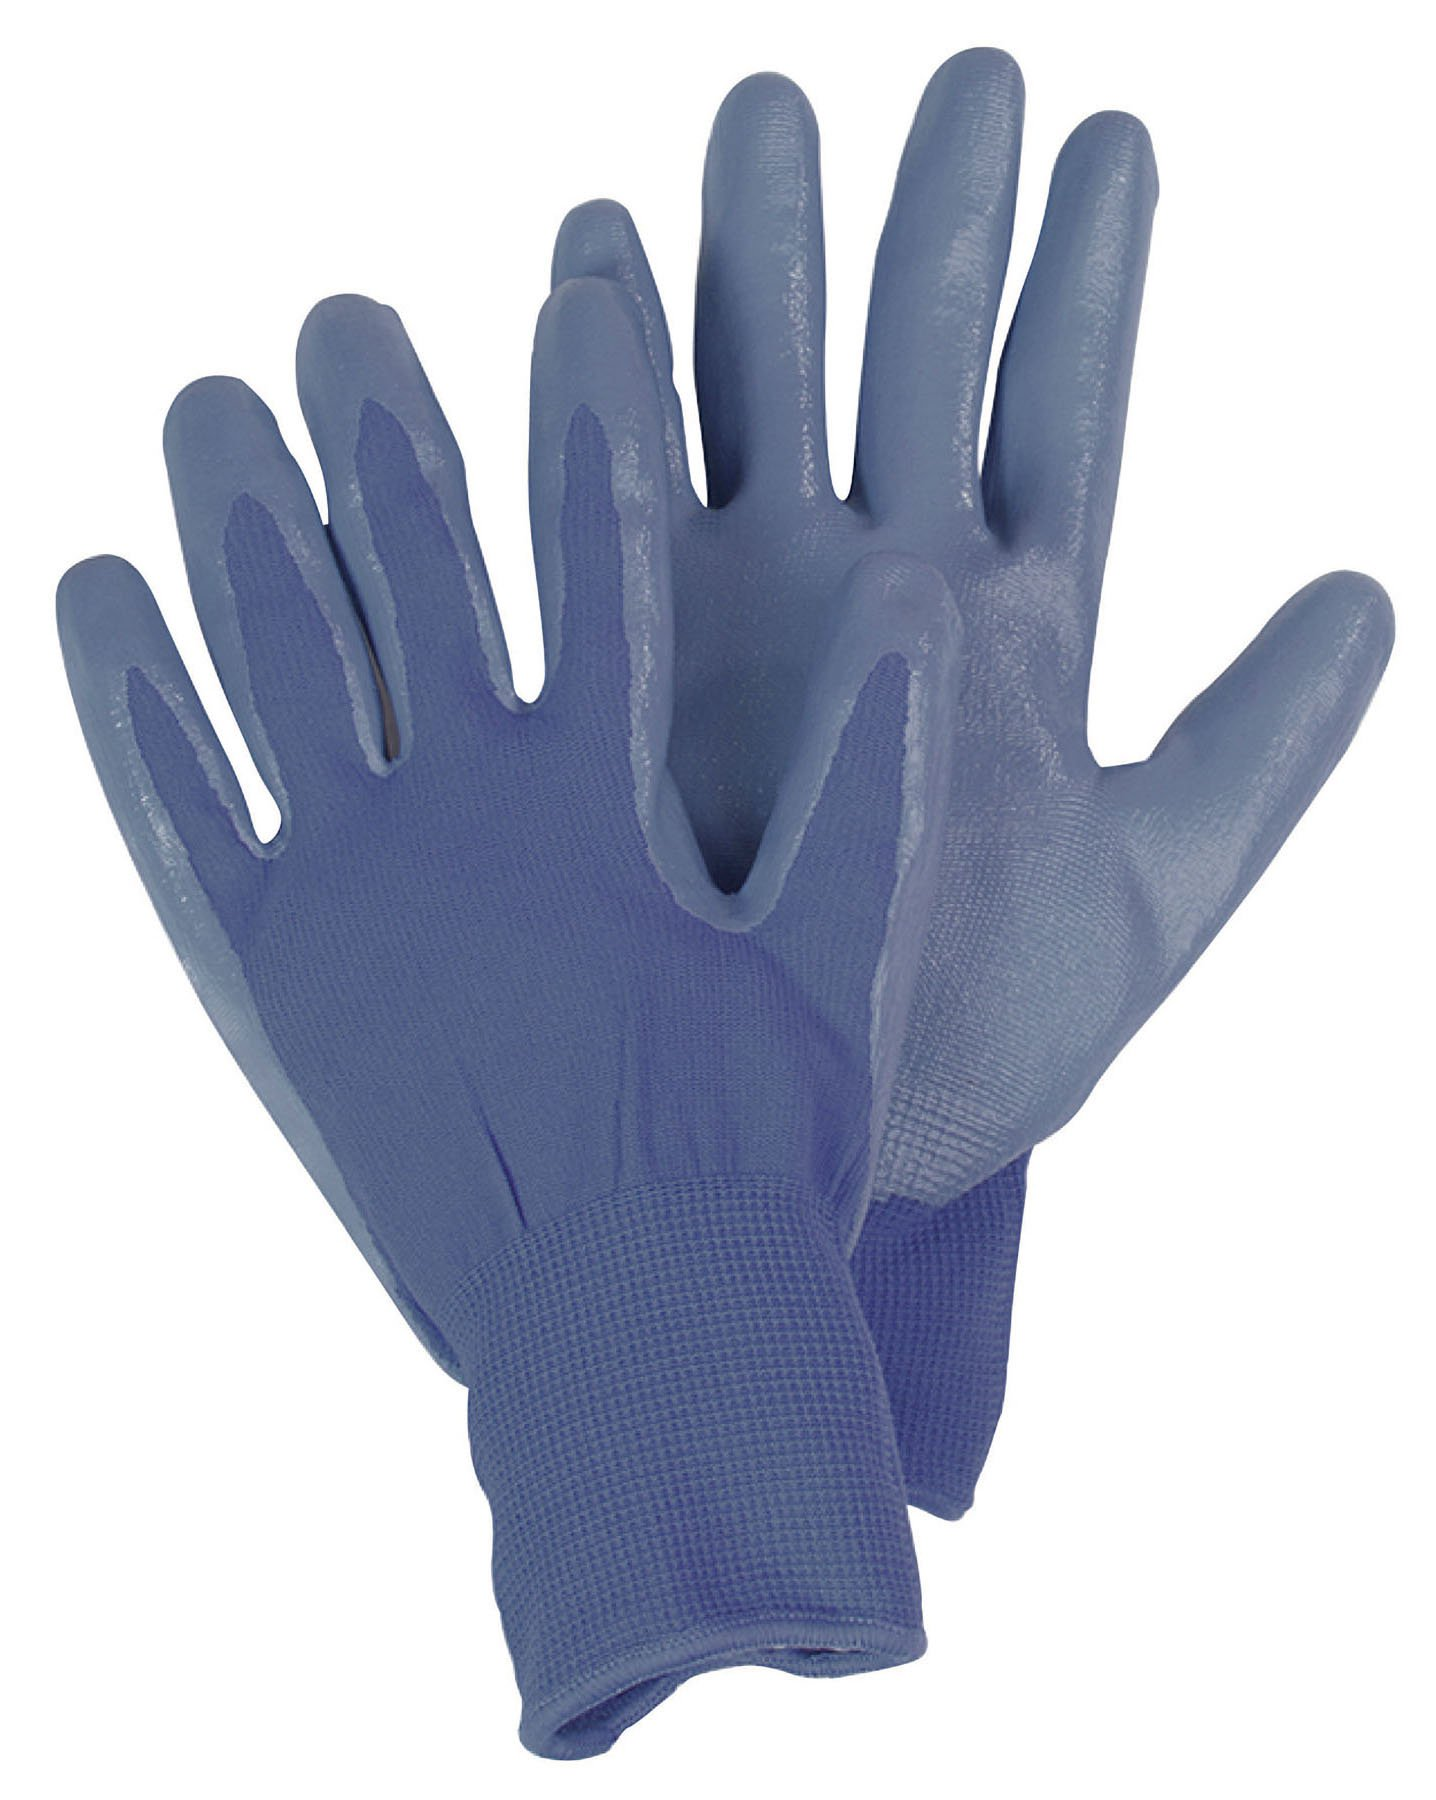 Briers Seed Weed Gardening Gloves Blue at Barnitts